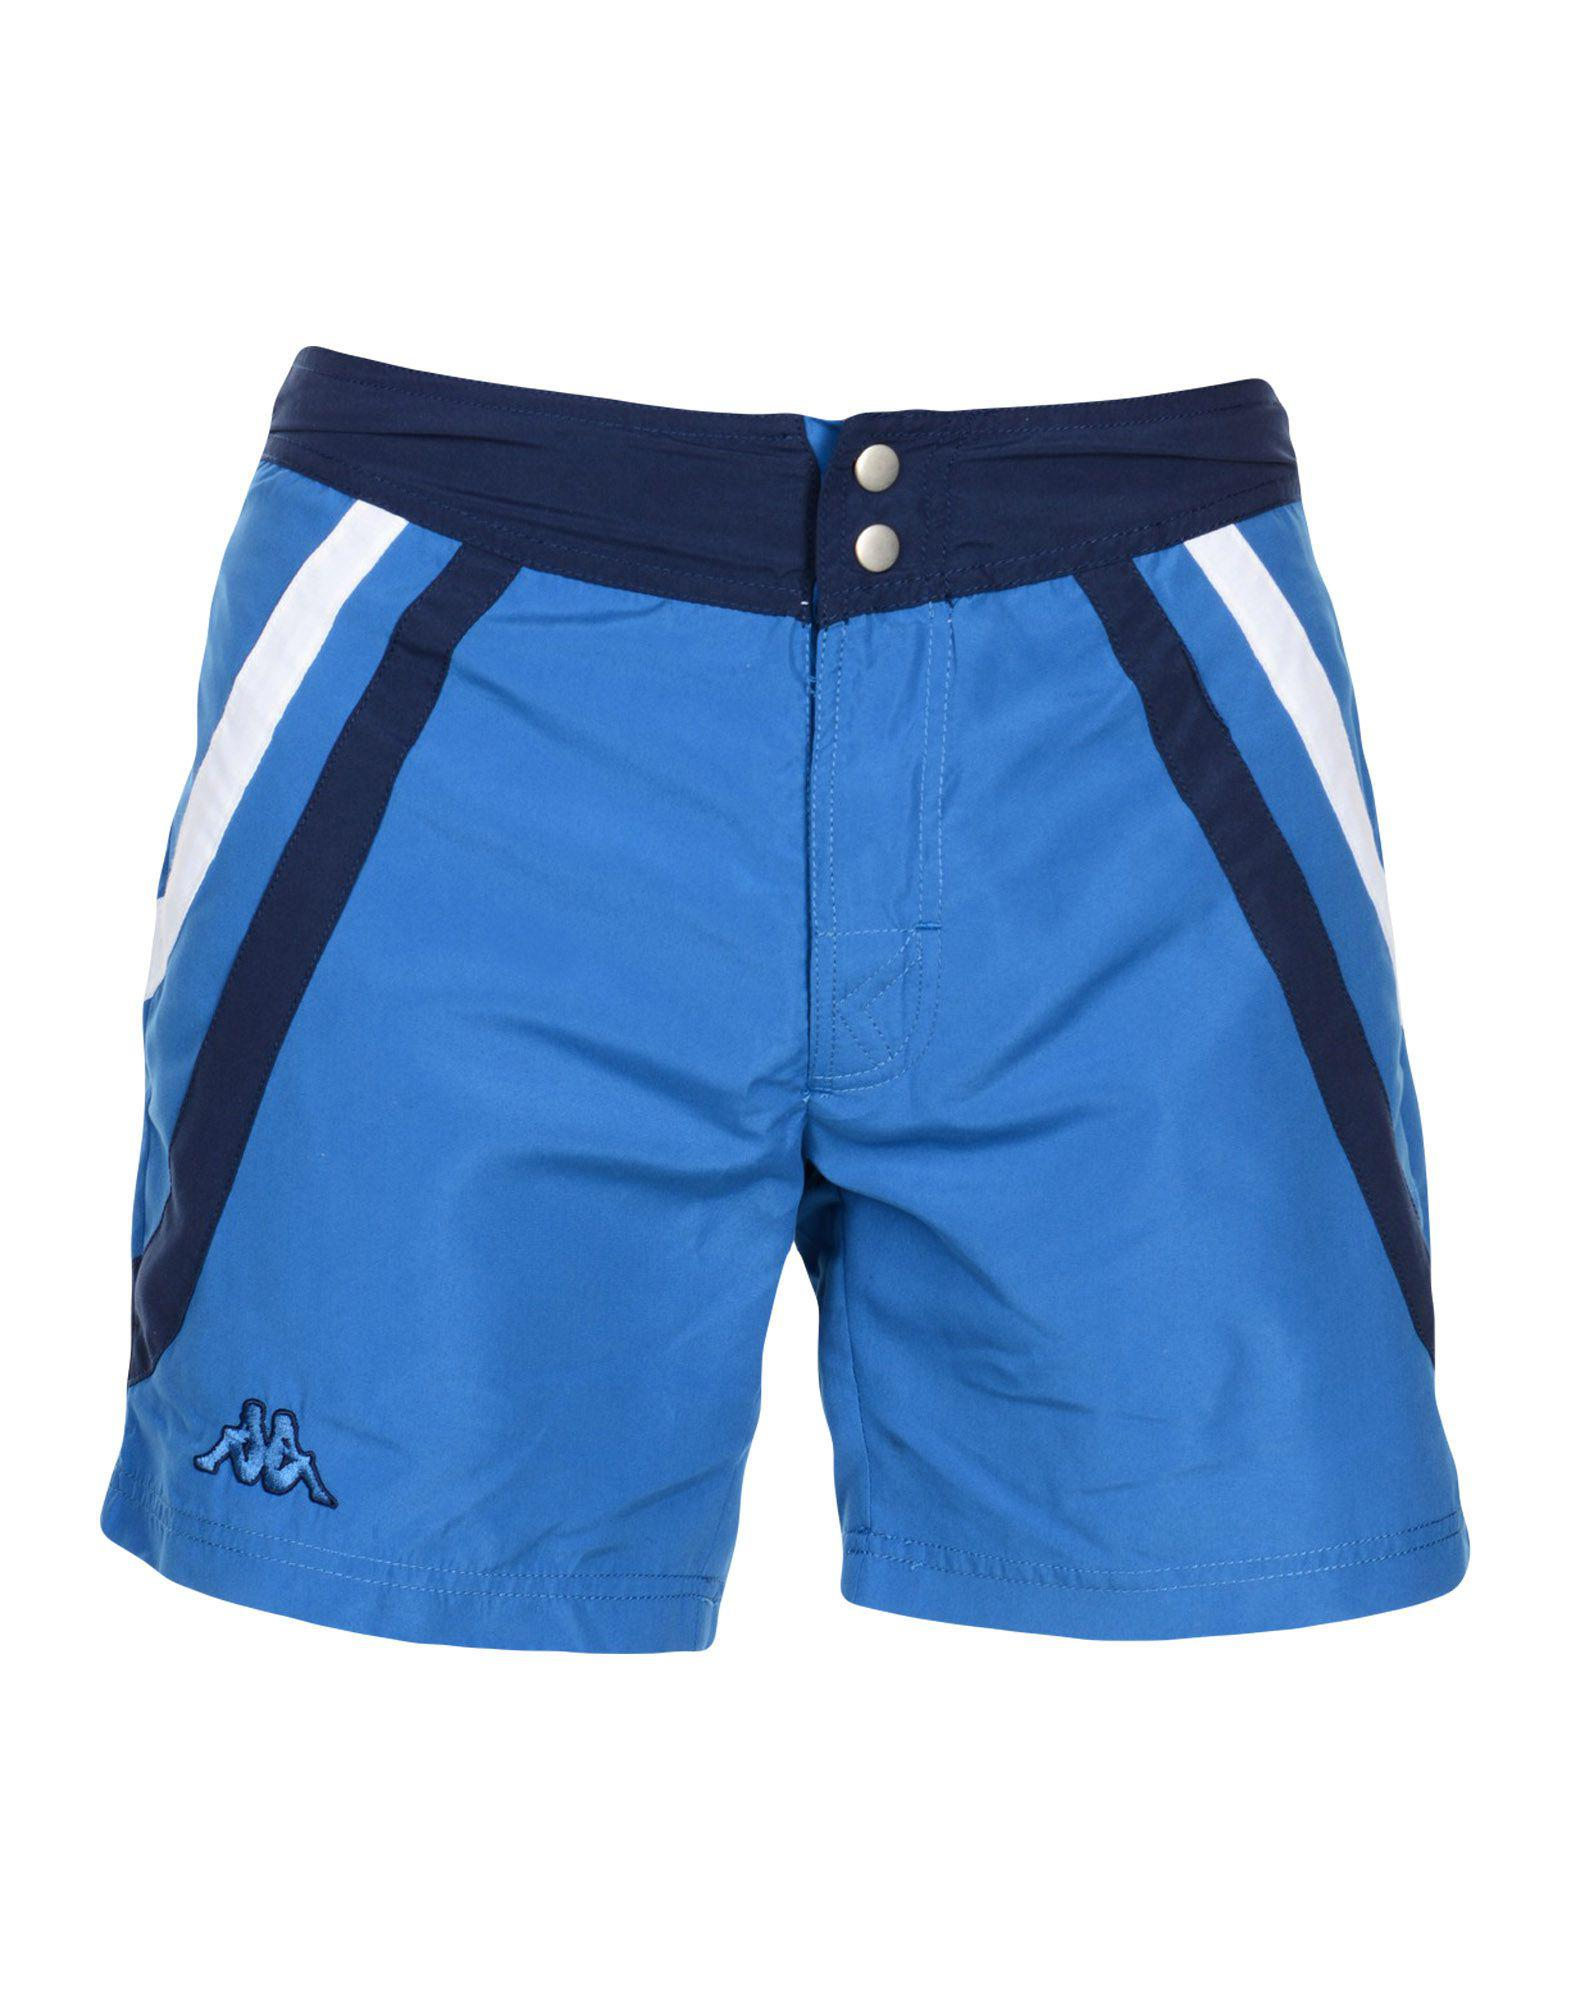 7ad8e4d53508e Lyst - Kappa Swimming Trunks in Blue for Men